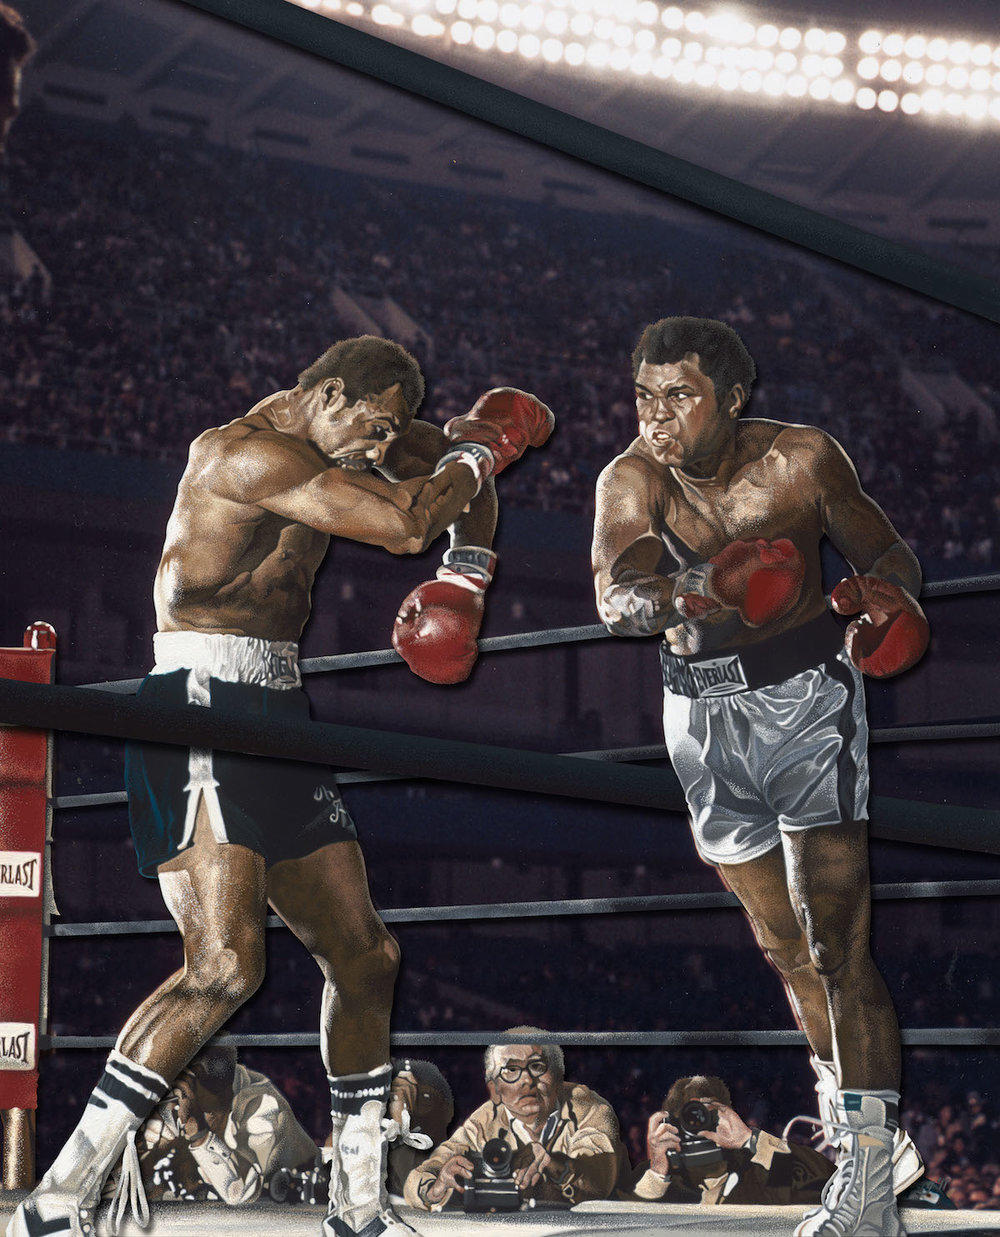 The Greatest - 19